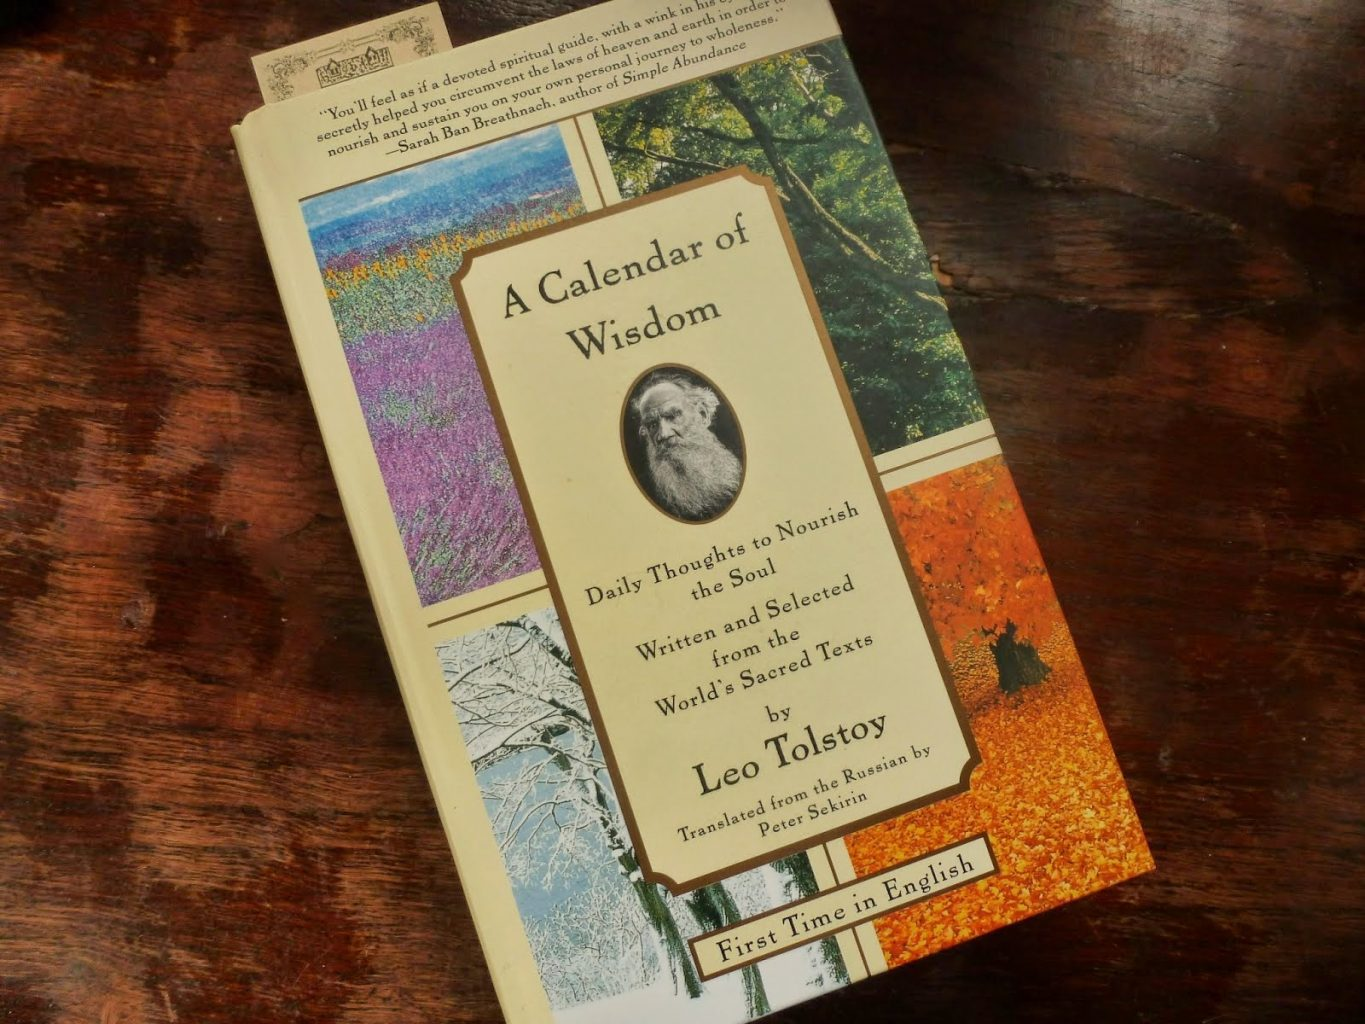 A Calendar of Wisdom by Leo Tolstoy as a book we all should own